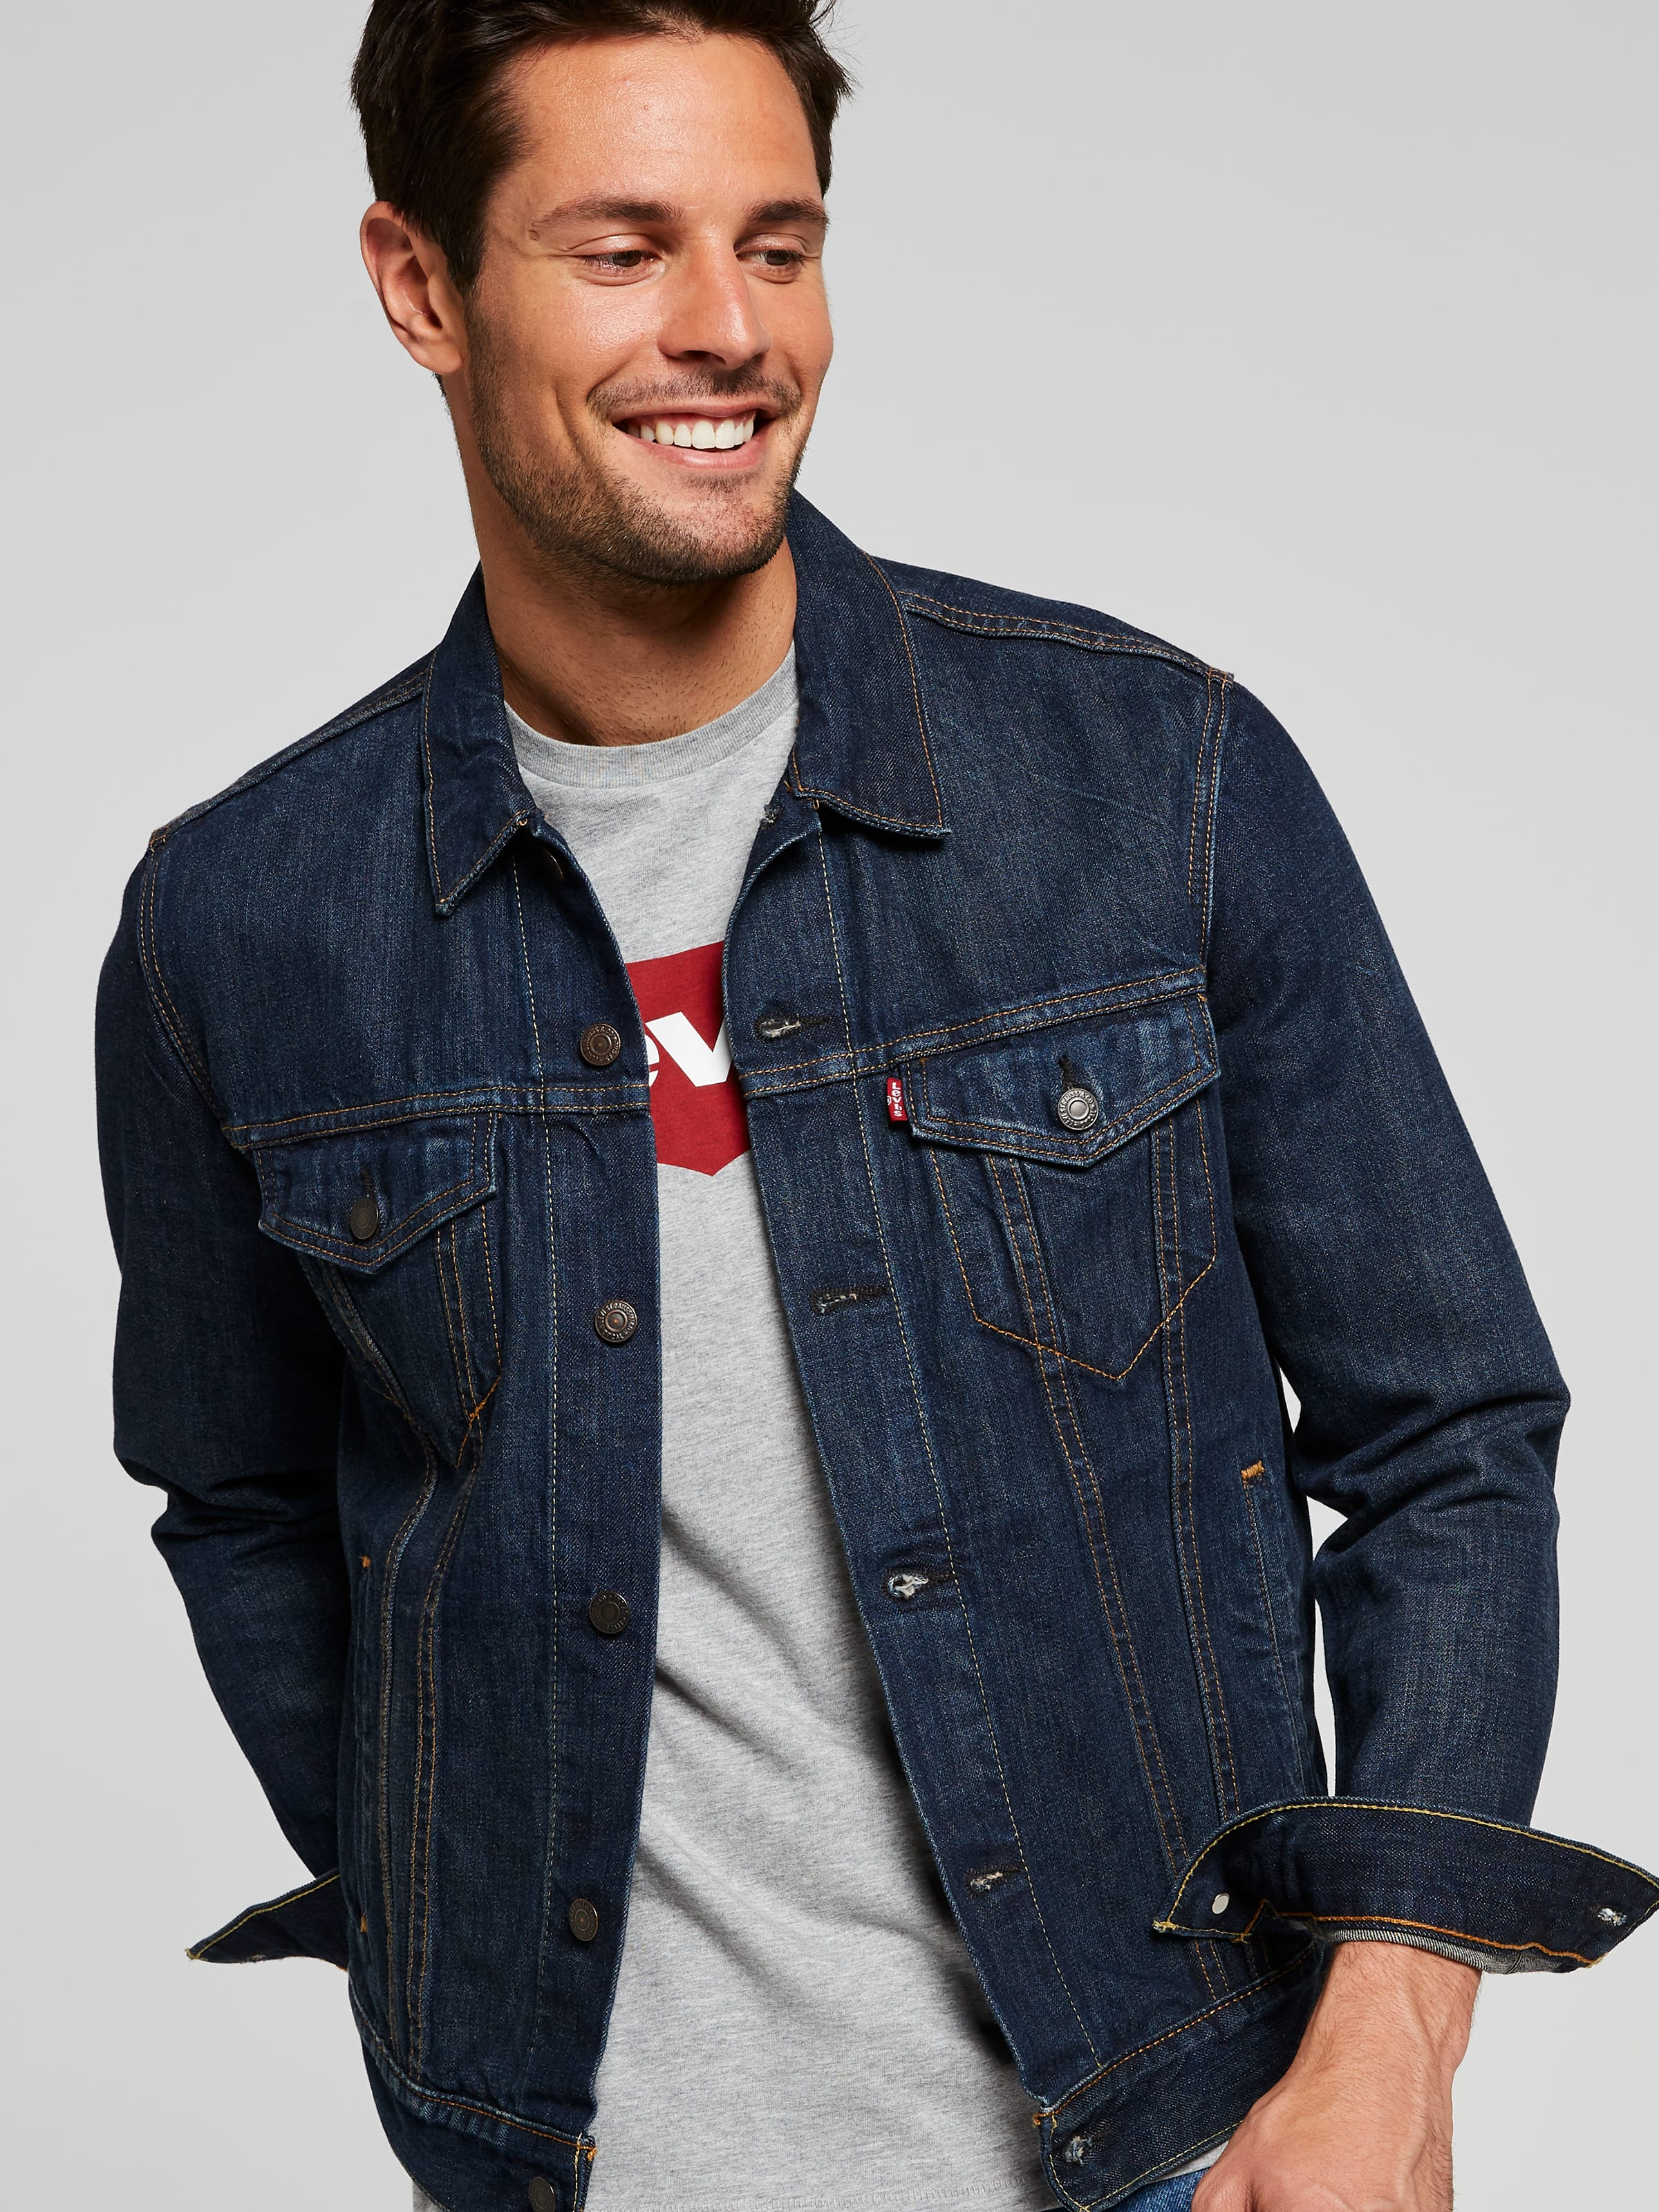 ace8625d345 Image for Levi s Trucker Jacket In Conifer from Just Jeans ...